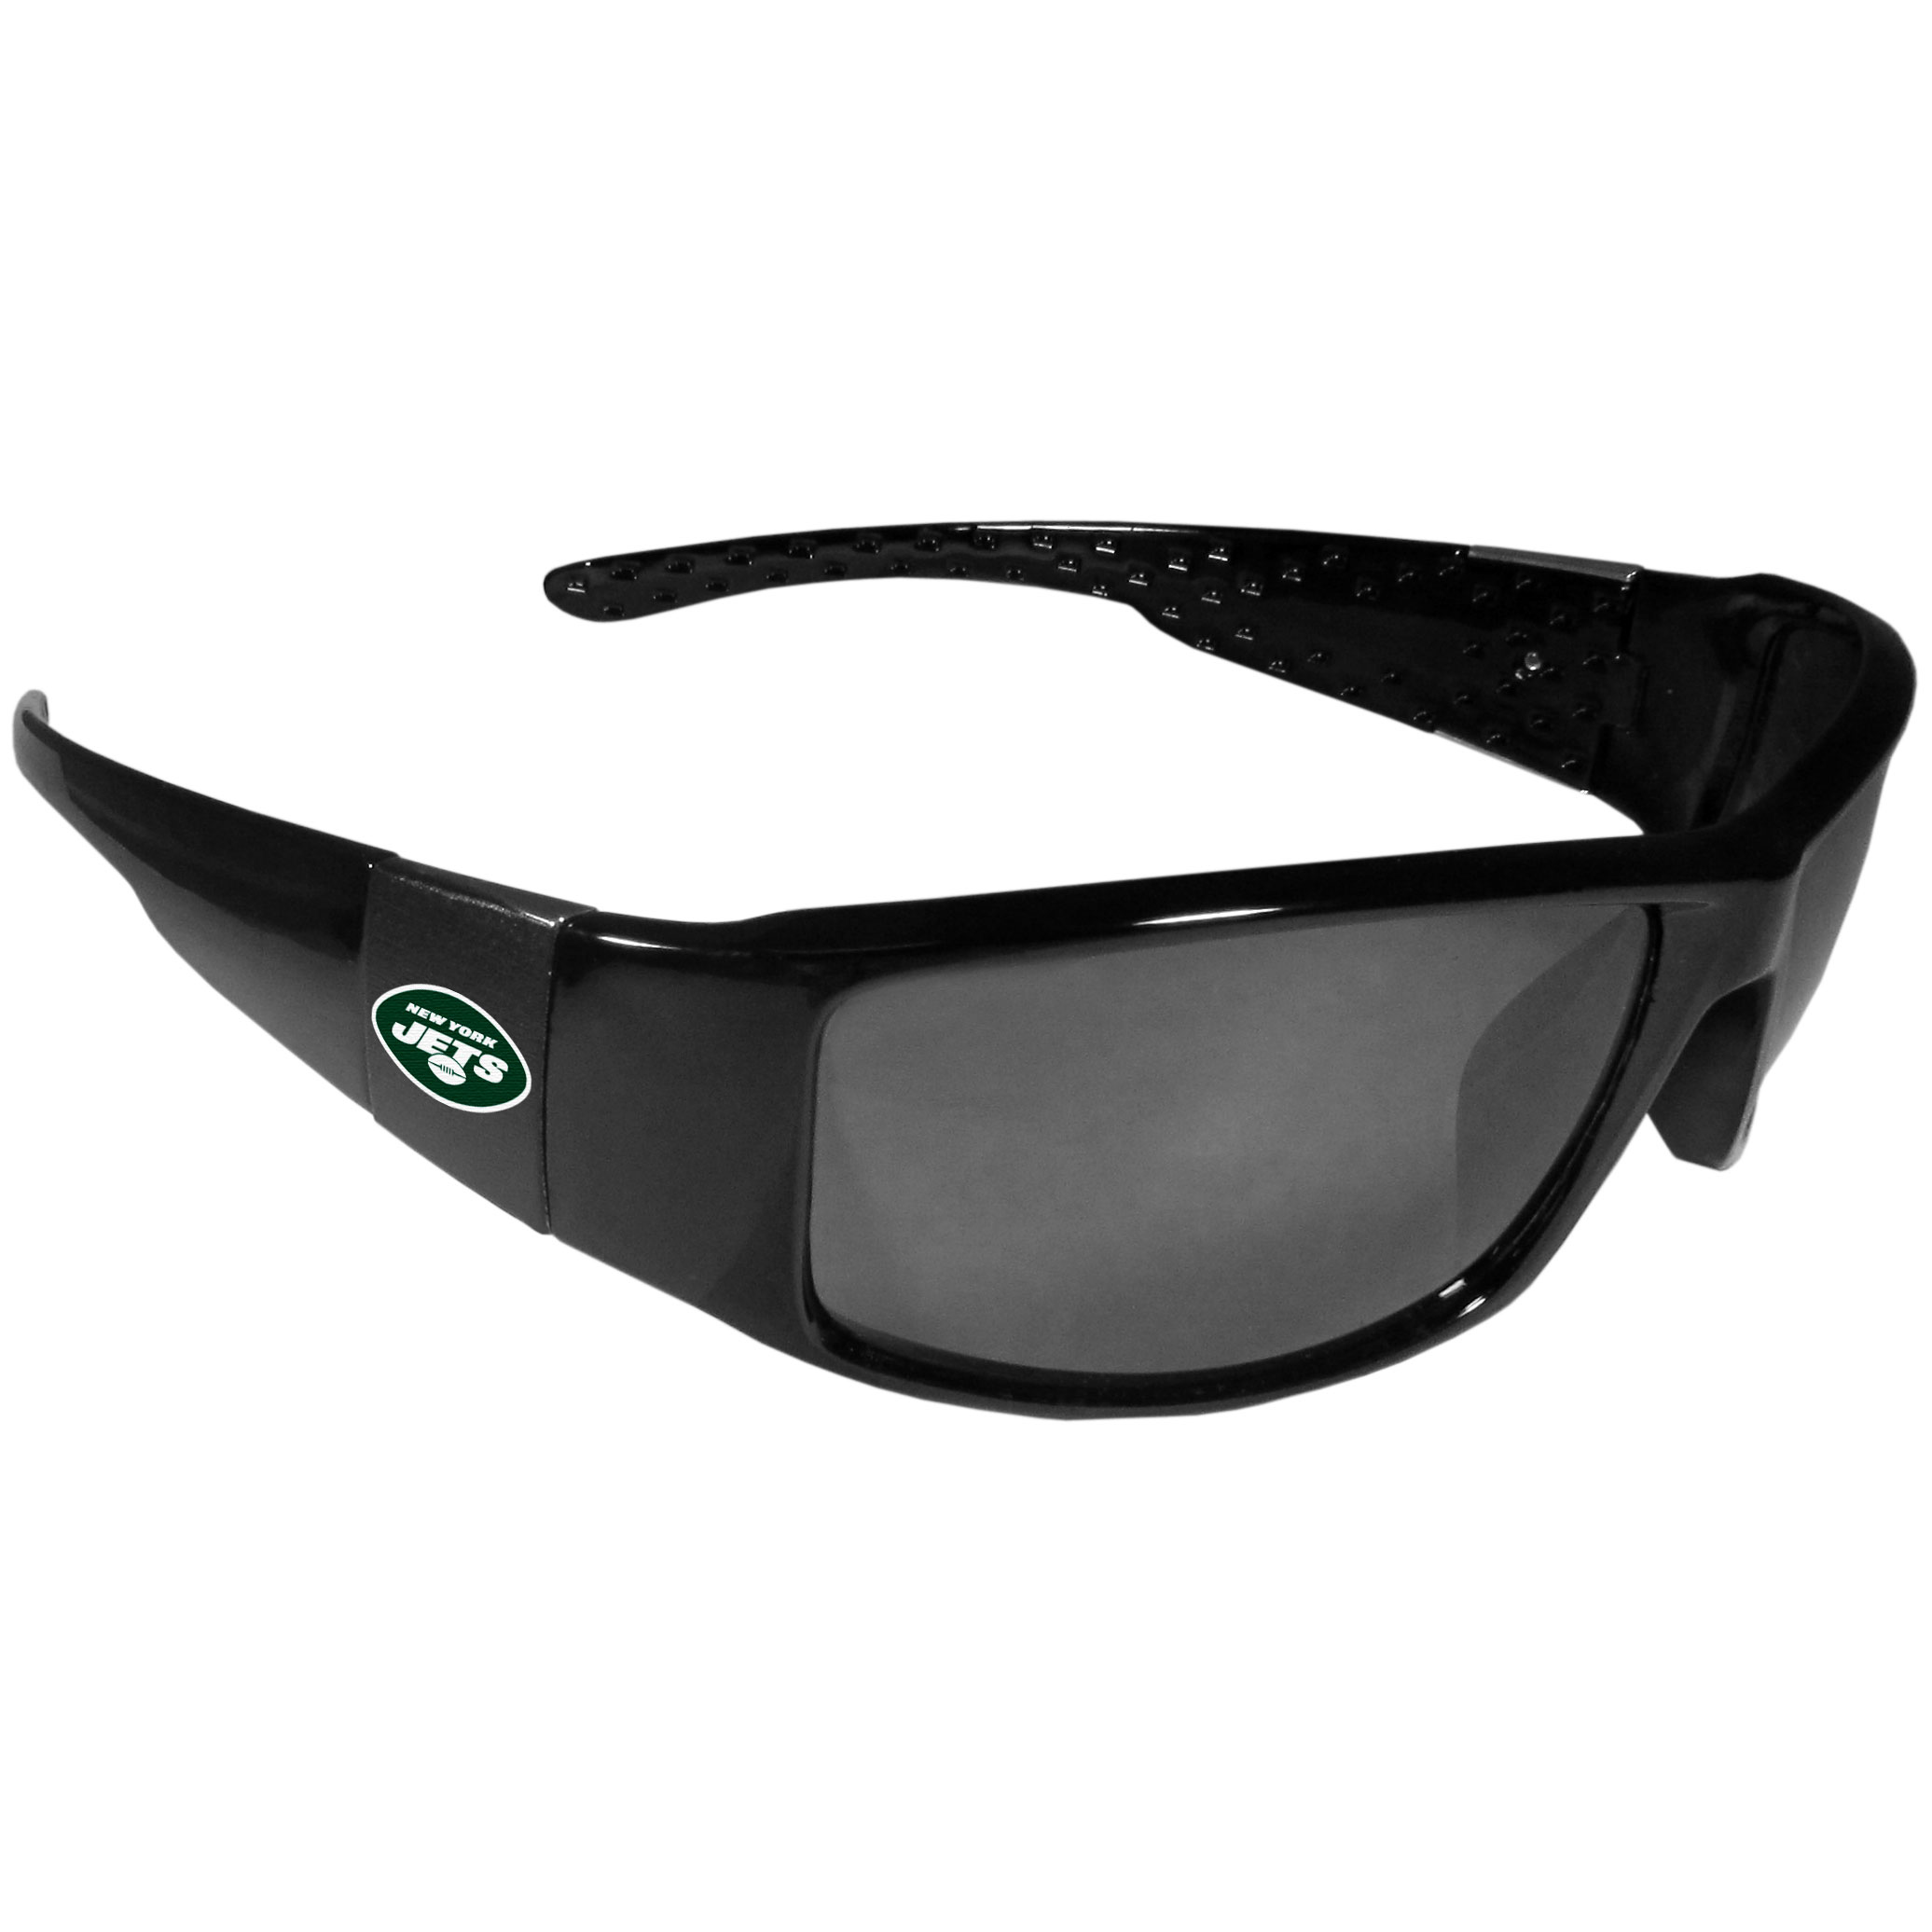 New York Jets Black Wrap Sunglasses - These designer inspired frames have a sleek look in all black with  New York Jets shields on each arm with a printed logo. The shades are perfect for any outdoor activity like; golfing, driving, hiking, fishing or cheering on the team at a tailgating event or at a home game day BBQ with a lens rating of 100% UVA/UVB for maximum UV protection. The high-quality frames are as durable as they are fashionable and with their classic look they are the perfect fan accessory that can be worn everyday for every occasion.